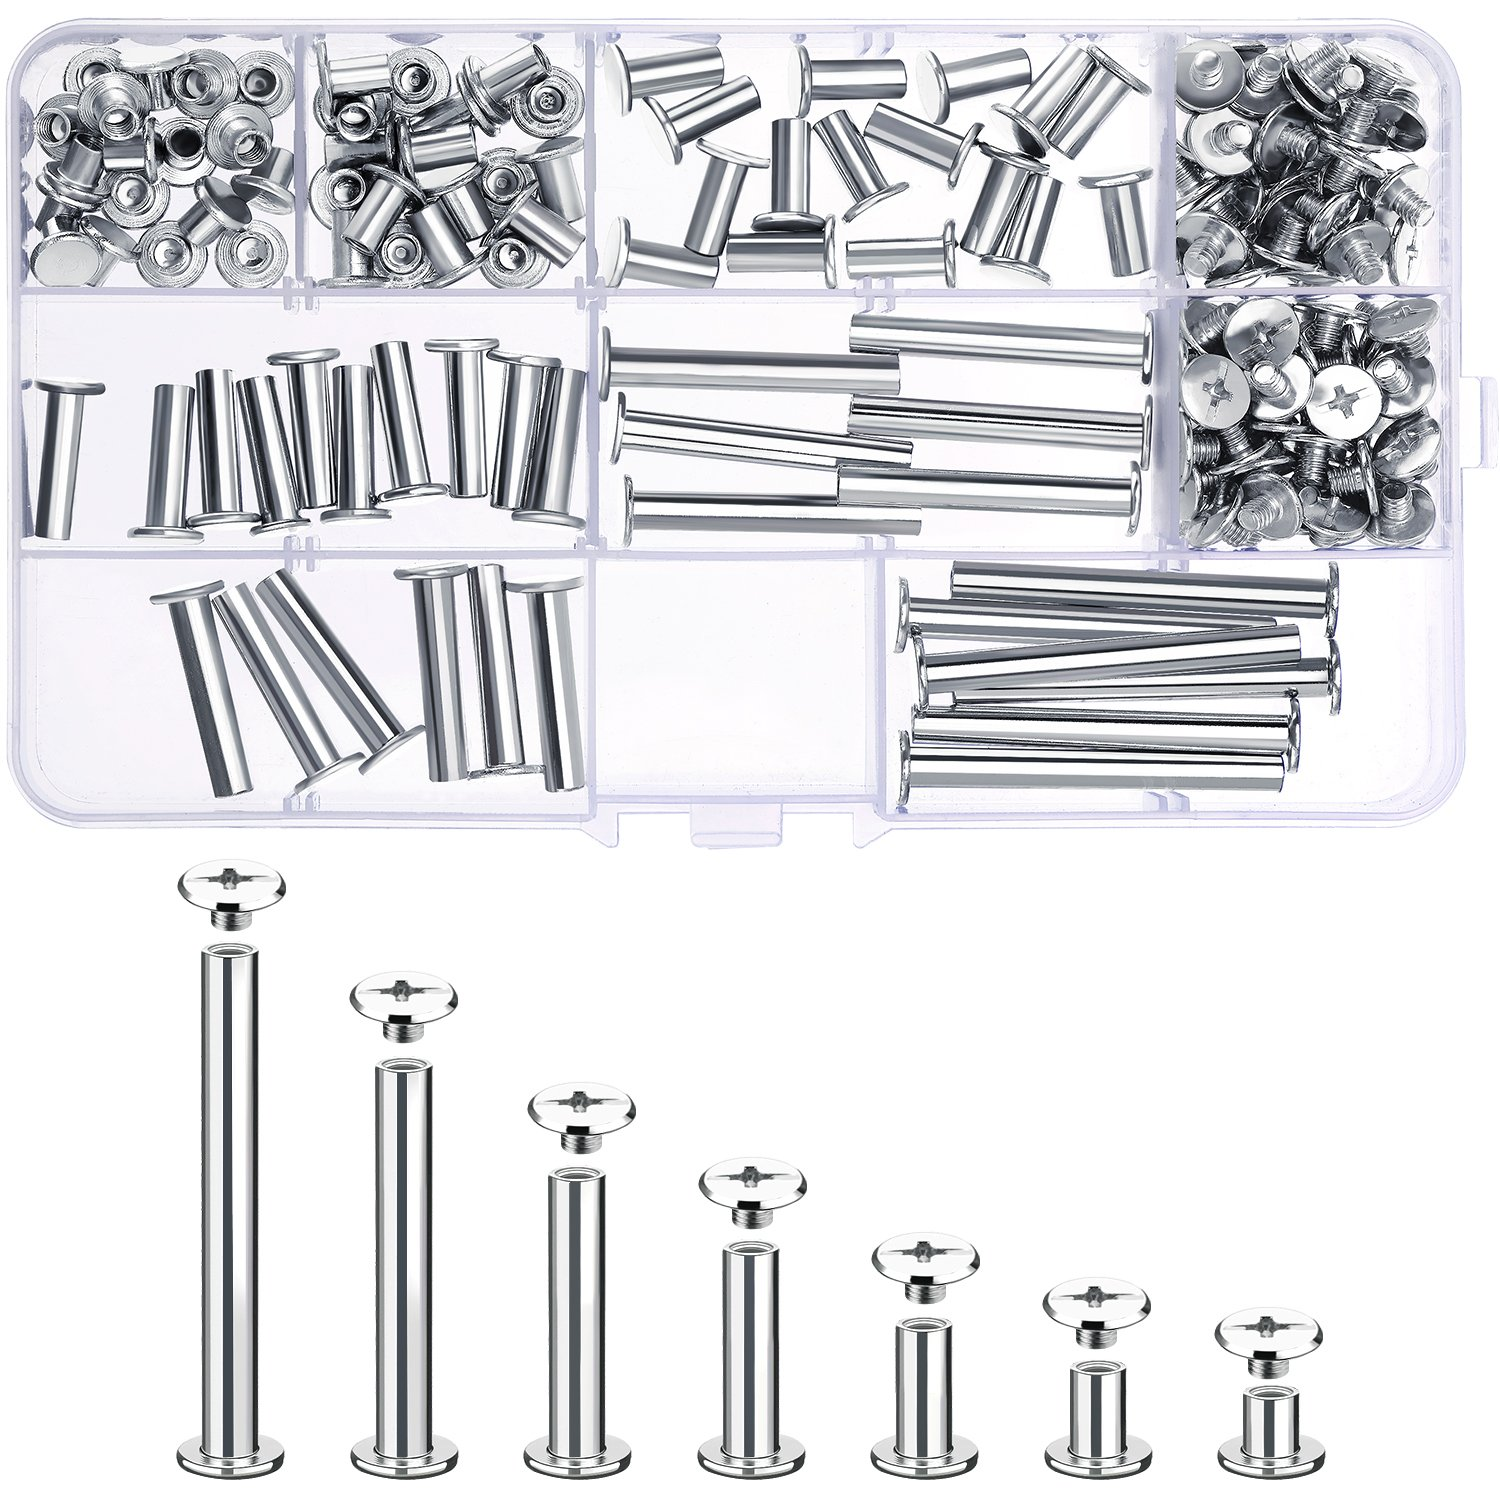 Pangda 80 Set Chicago Binding Screws Assorted Kit 7 Different Sizes Metal Round Cross Head Stud Screw Posts Nail Rivet Chicago Button for DIY Leather Decoration Bookbinding 4336863922